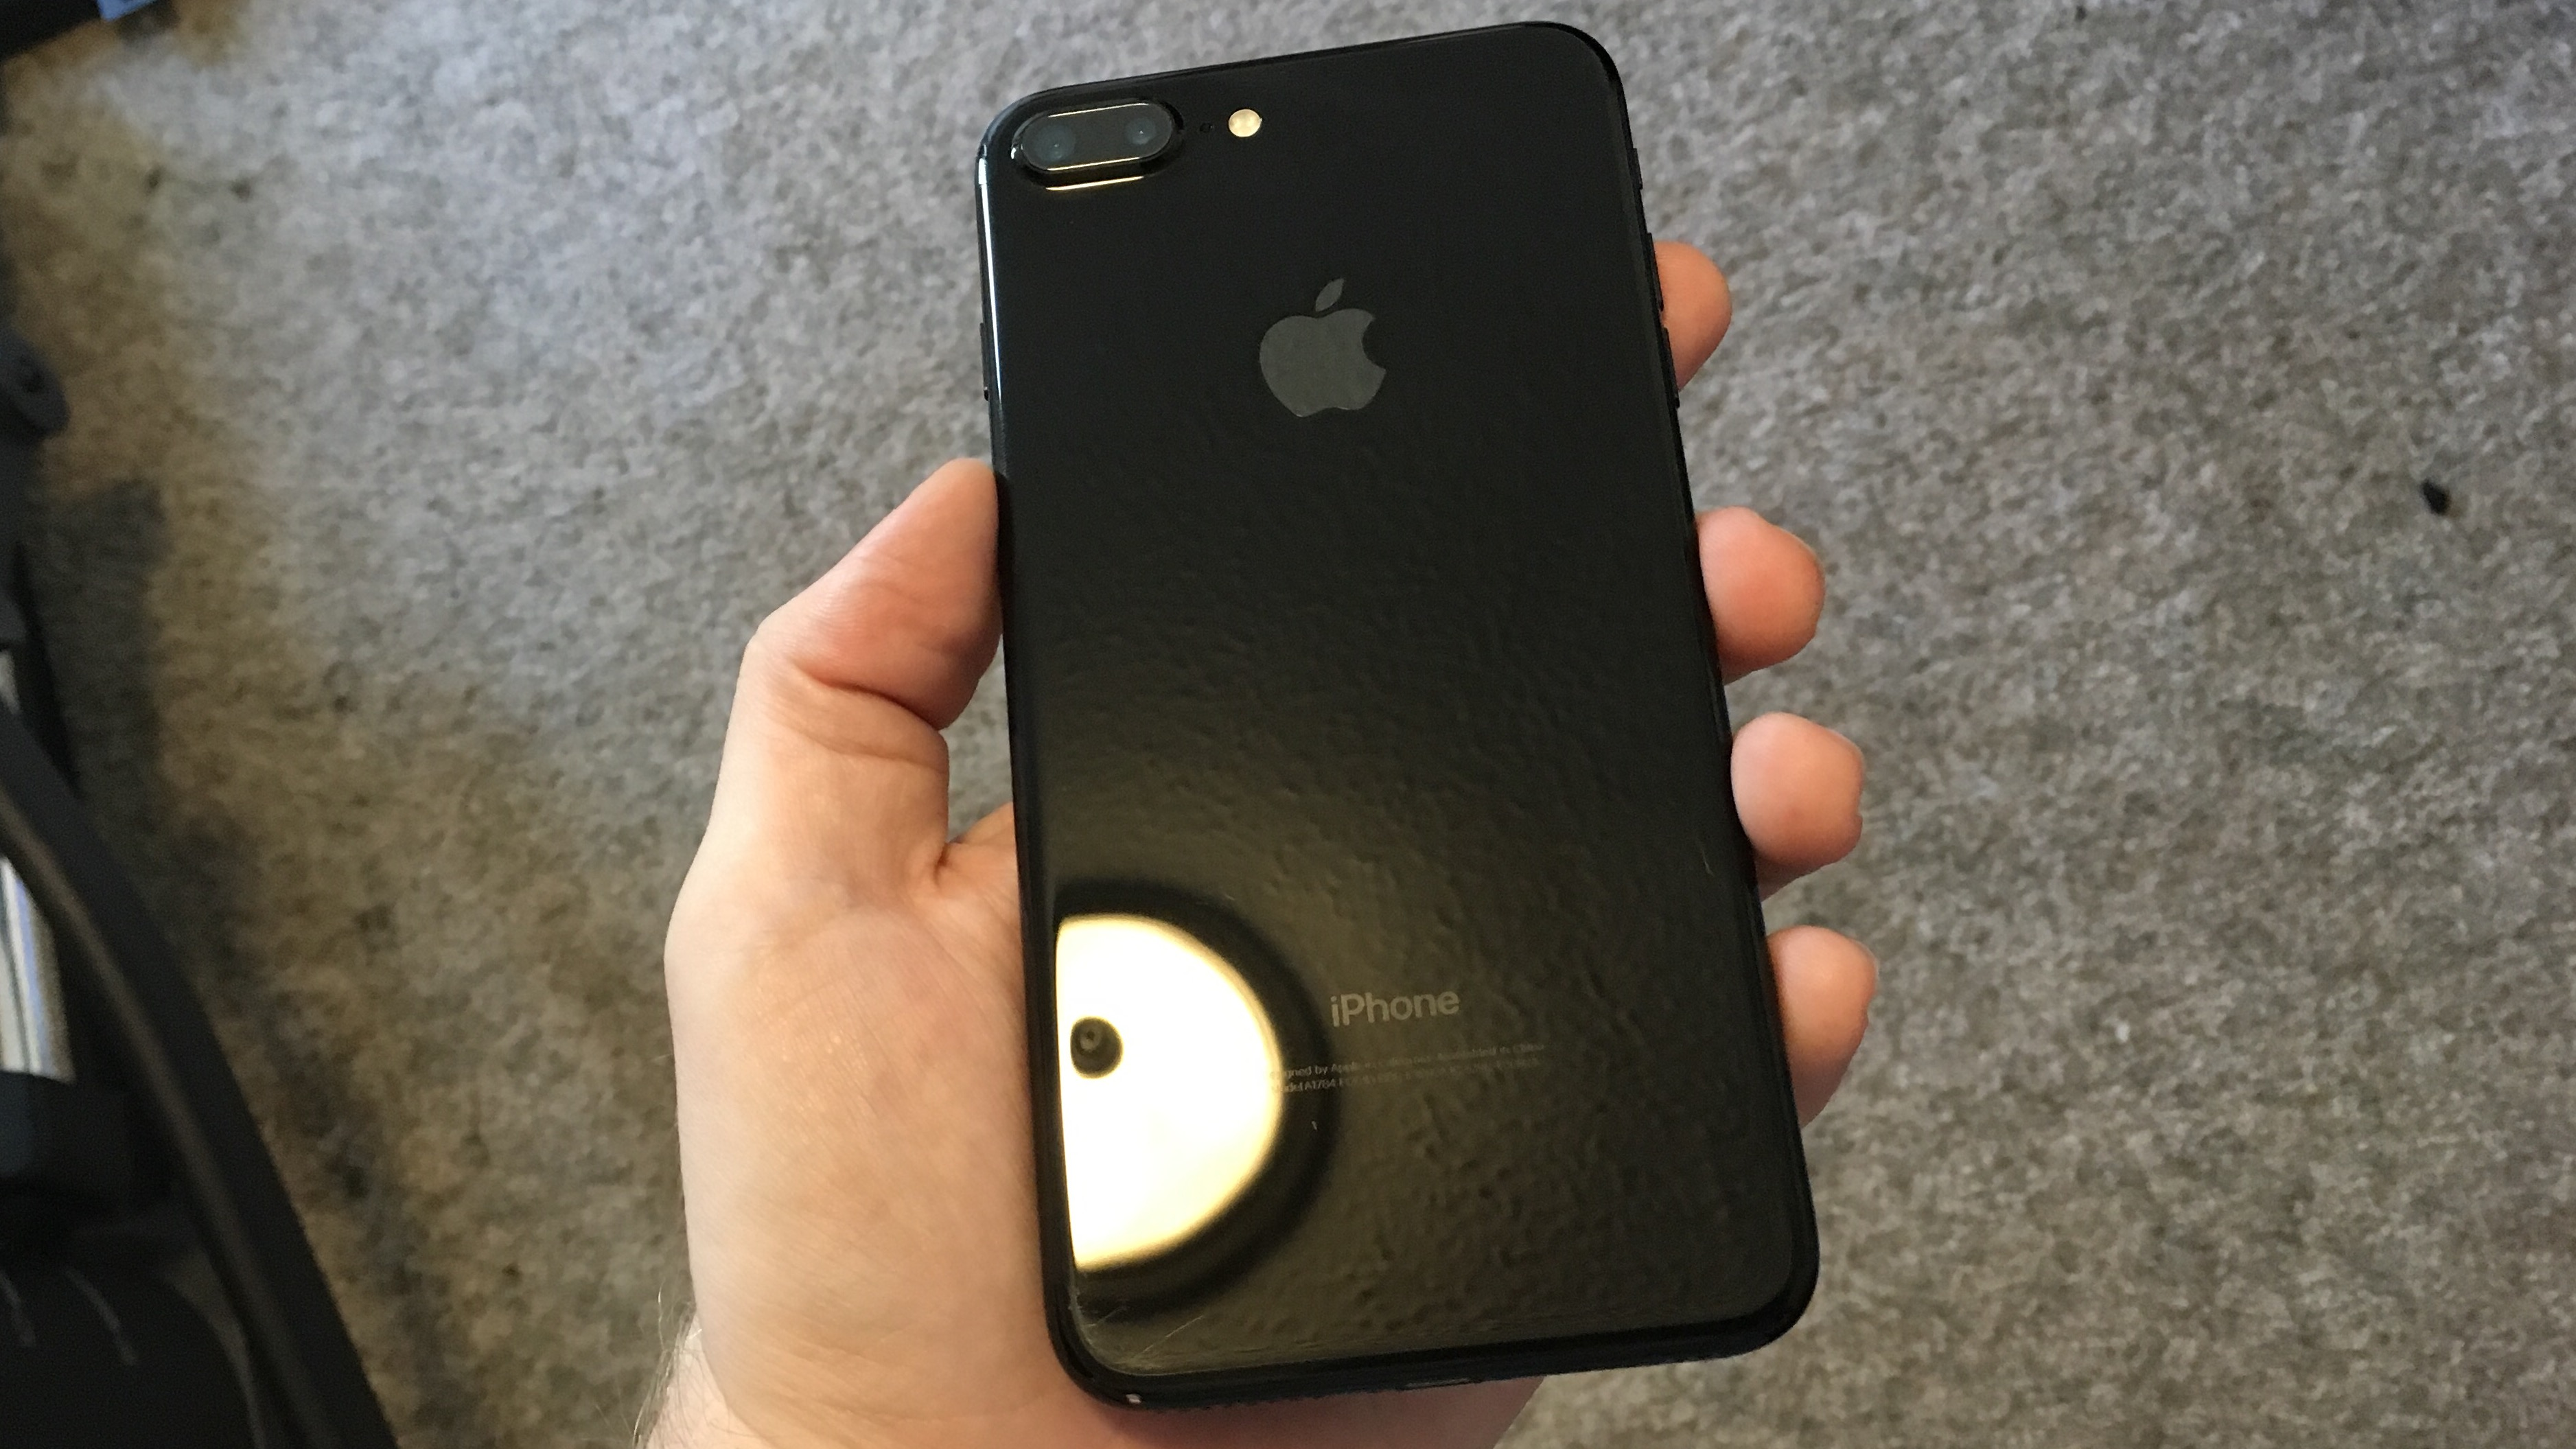 new concept 361d2 f3166 Here's how the jet black iPhone 7 finish holds up without a case ...